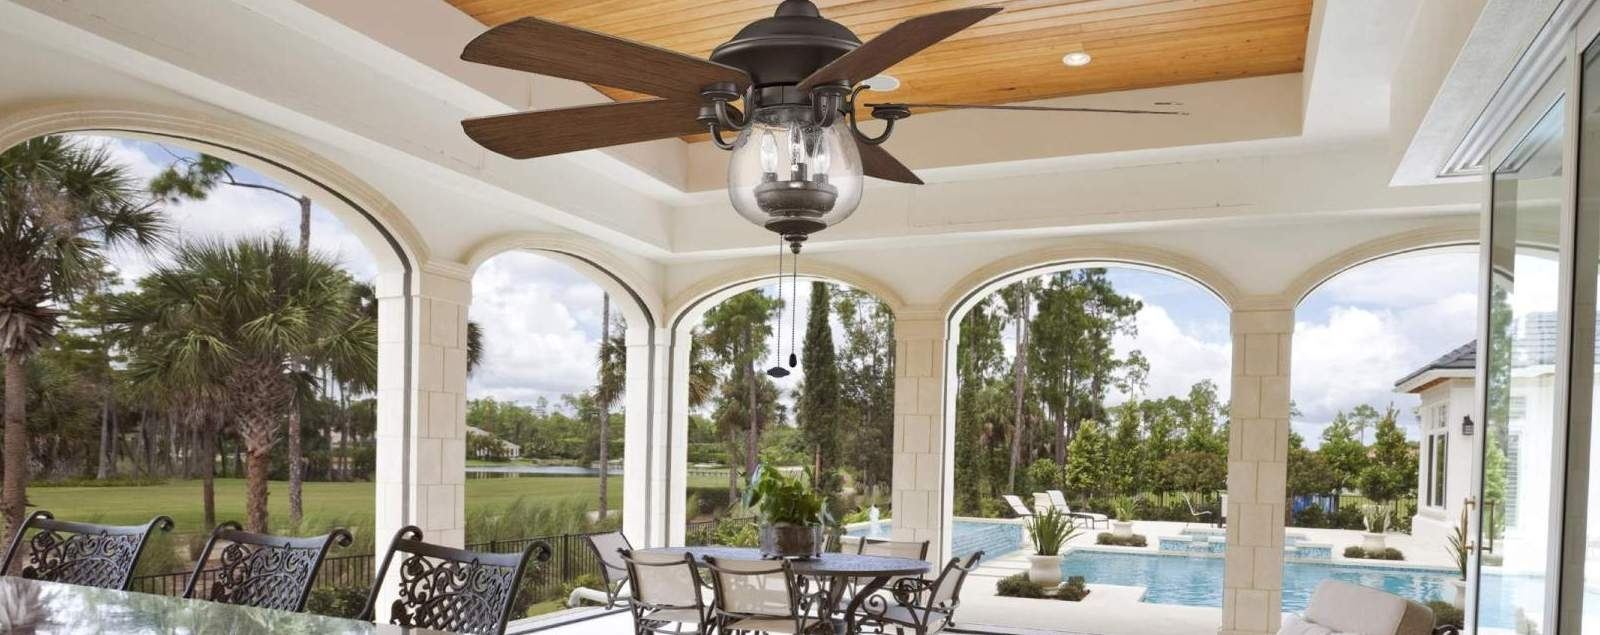 Most Recently Released Outdoor Ceiling Fans – Shop Wet, Dry, And Damp Rated Outdoor Fans Regarding Outdoor Ceiling Fans For Screened Porches (View 2 of 20)